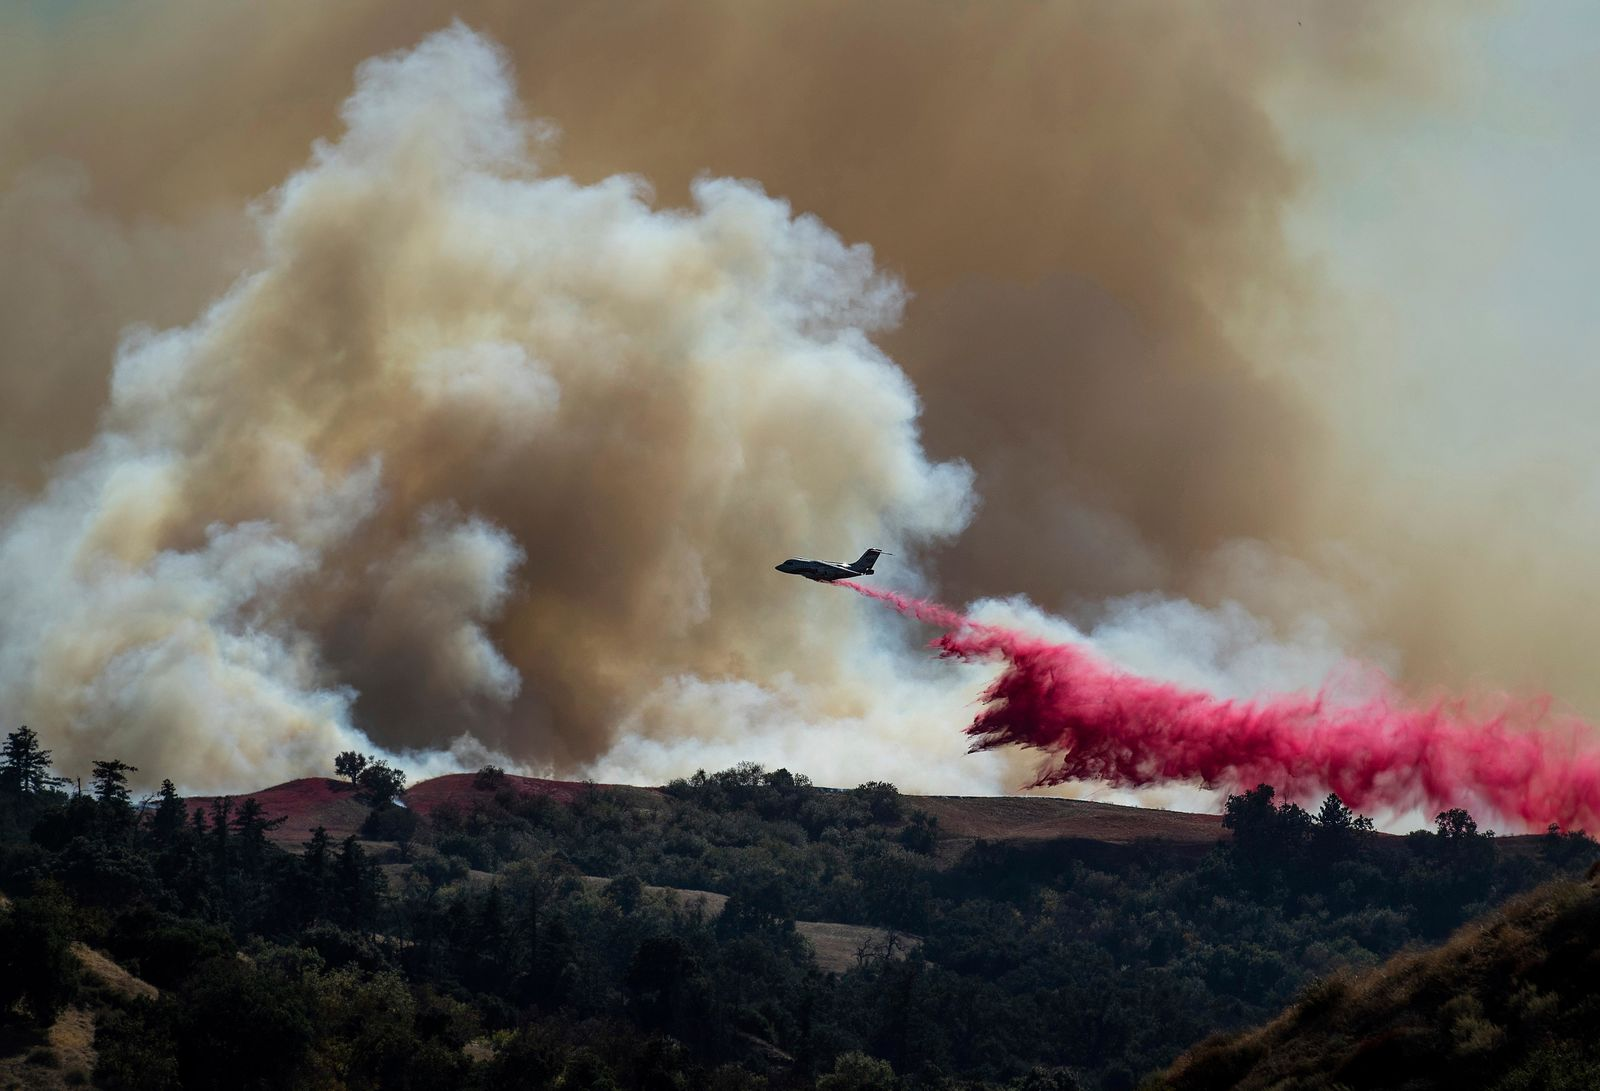 A tanker drops retardant on the Saddleridge Fire burning in Newhall, Calif., on Friday, Oct. 11, 2019. (AP Photo/Noah Berger)